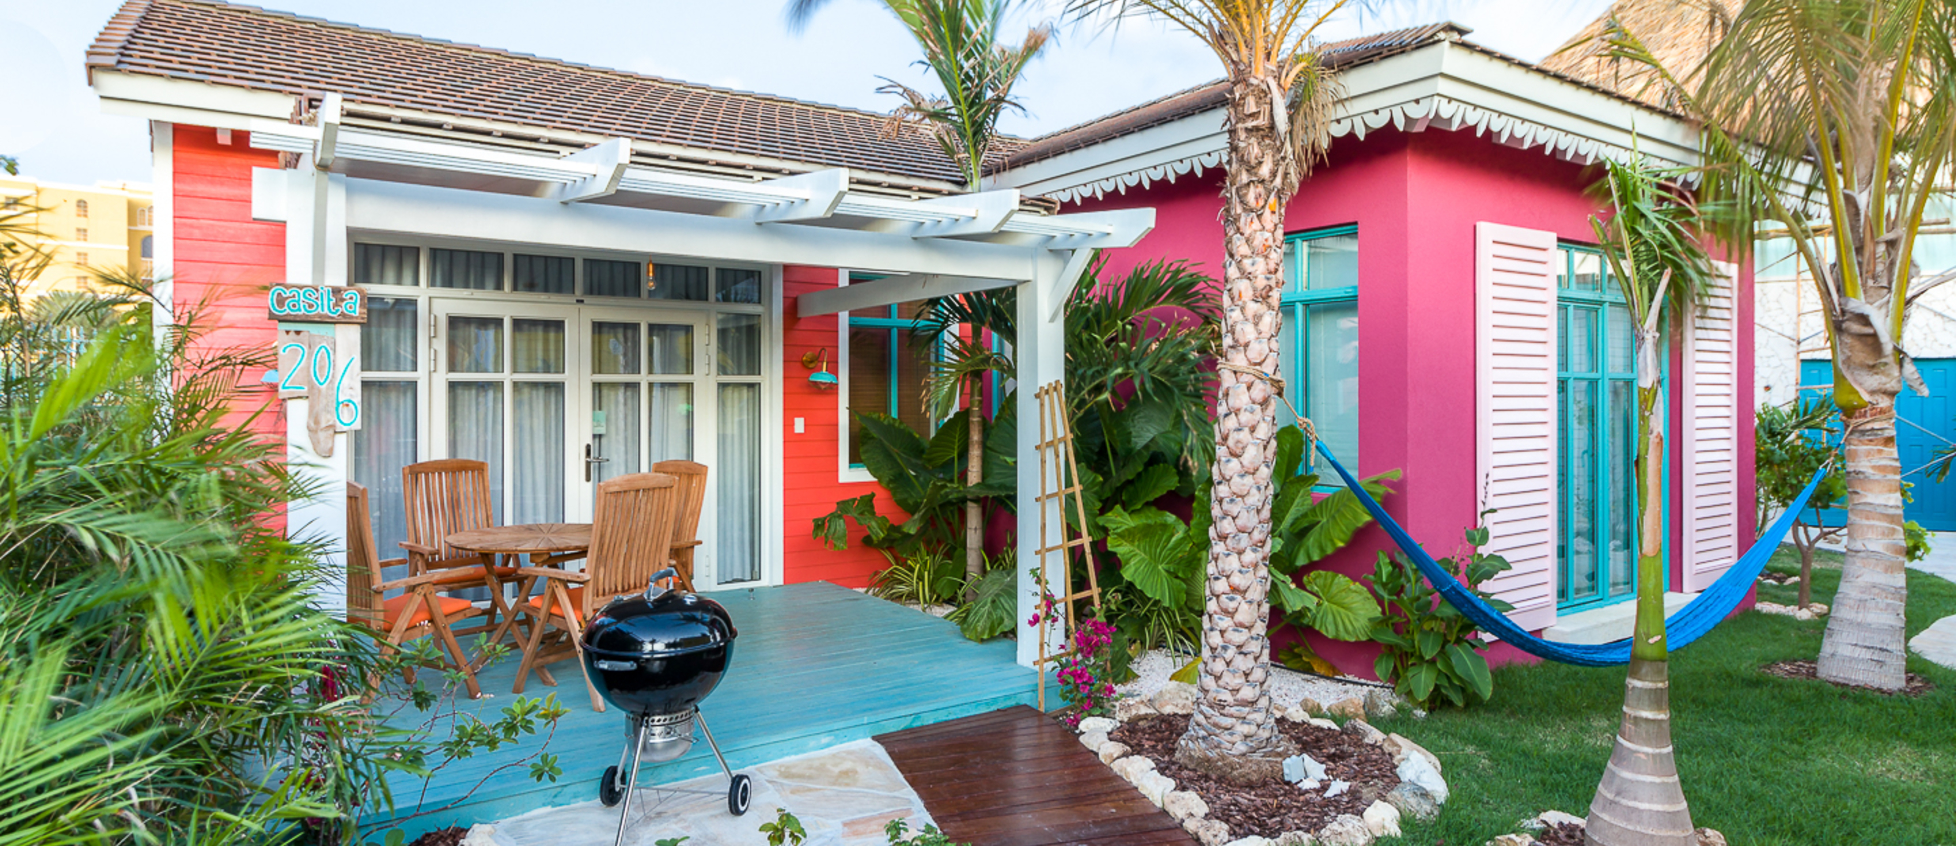 pink casita with patio and bbq